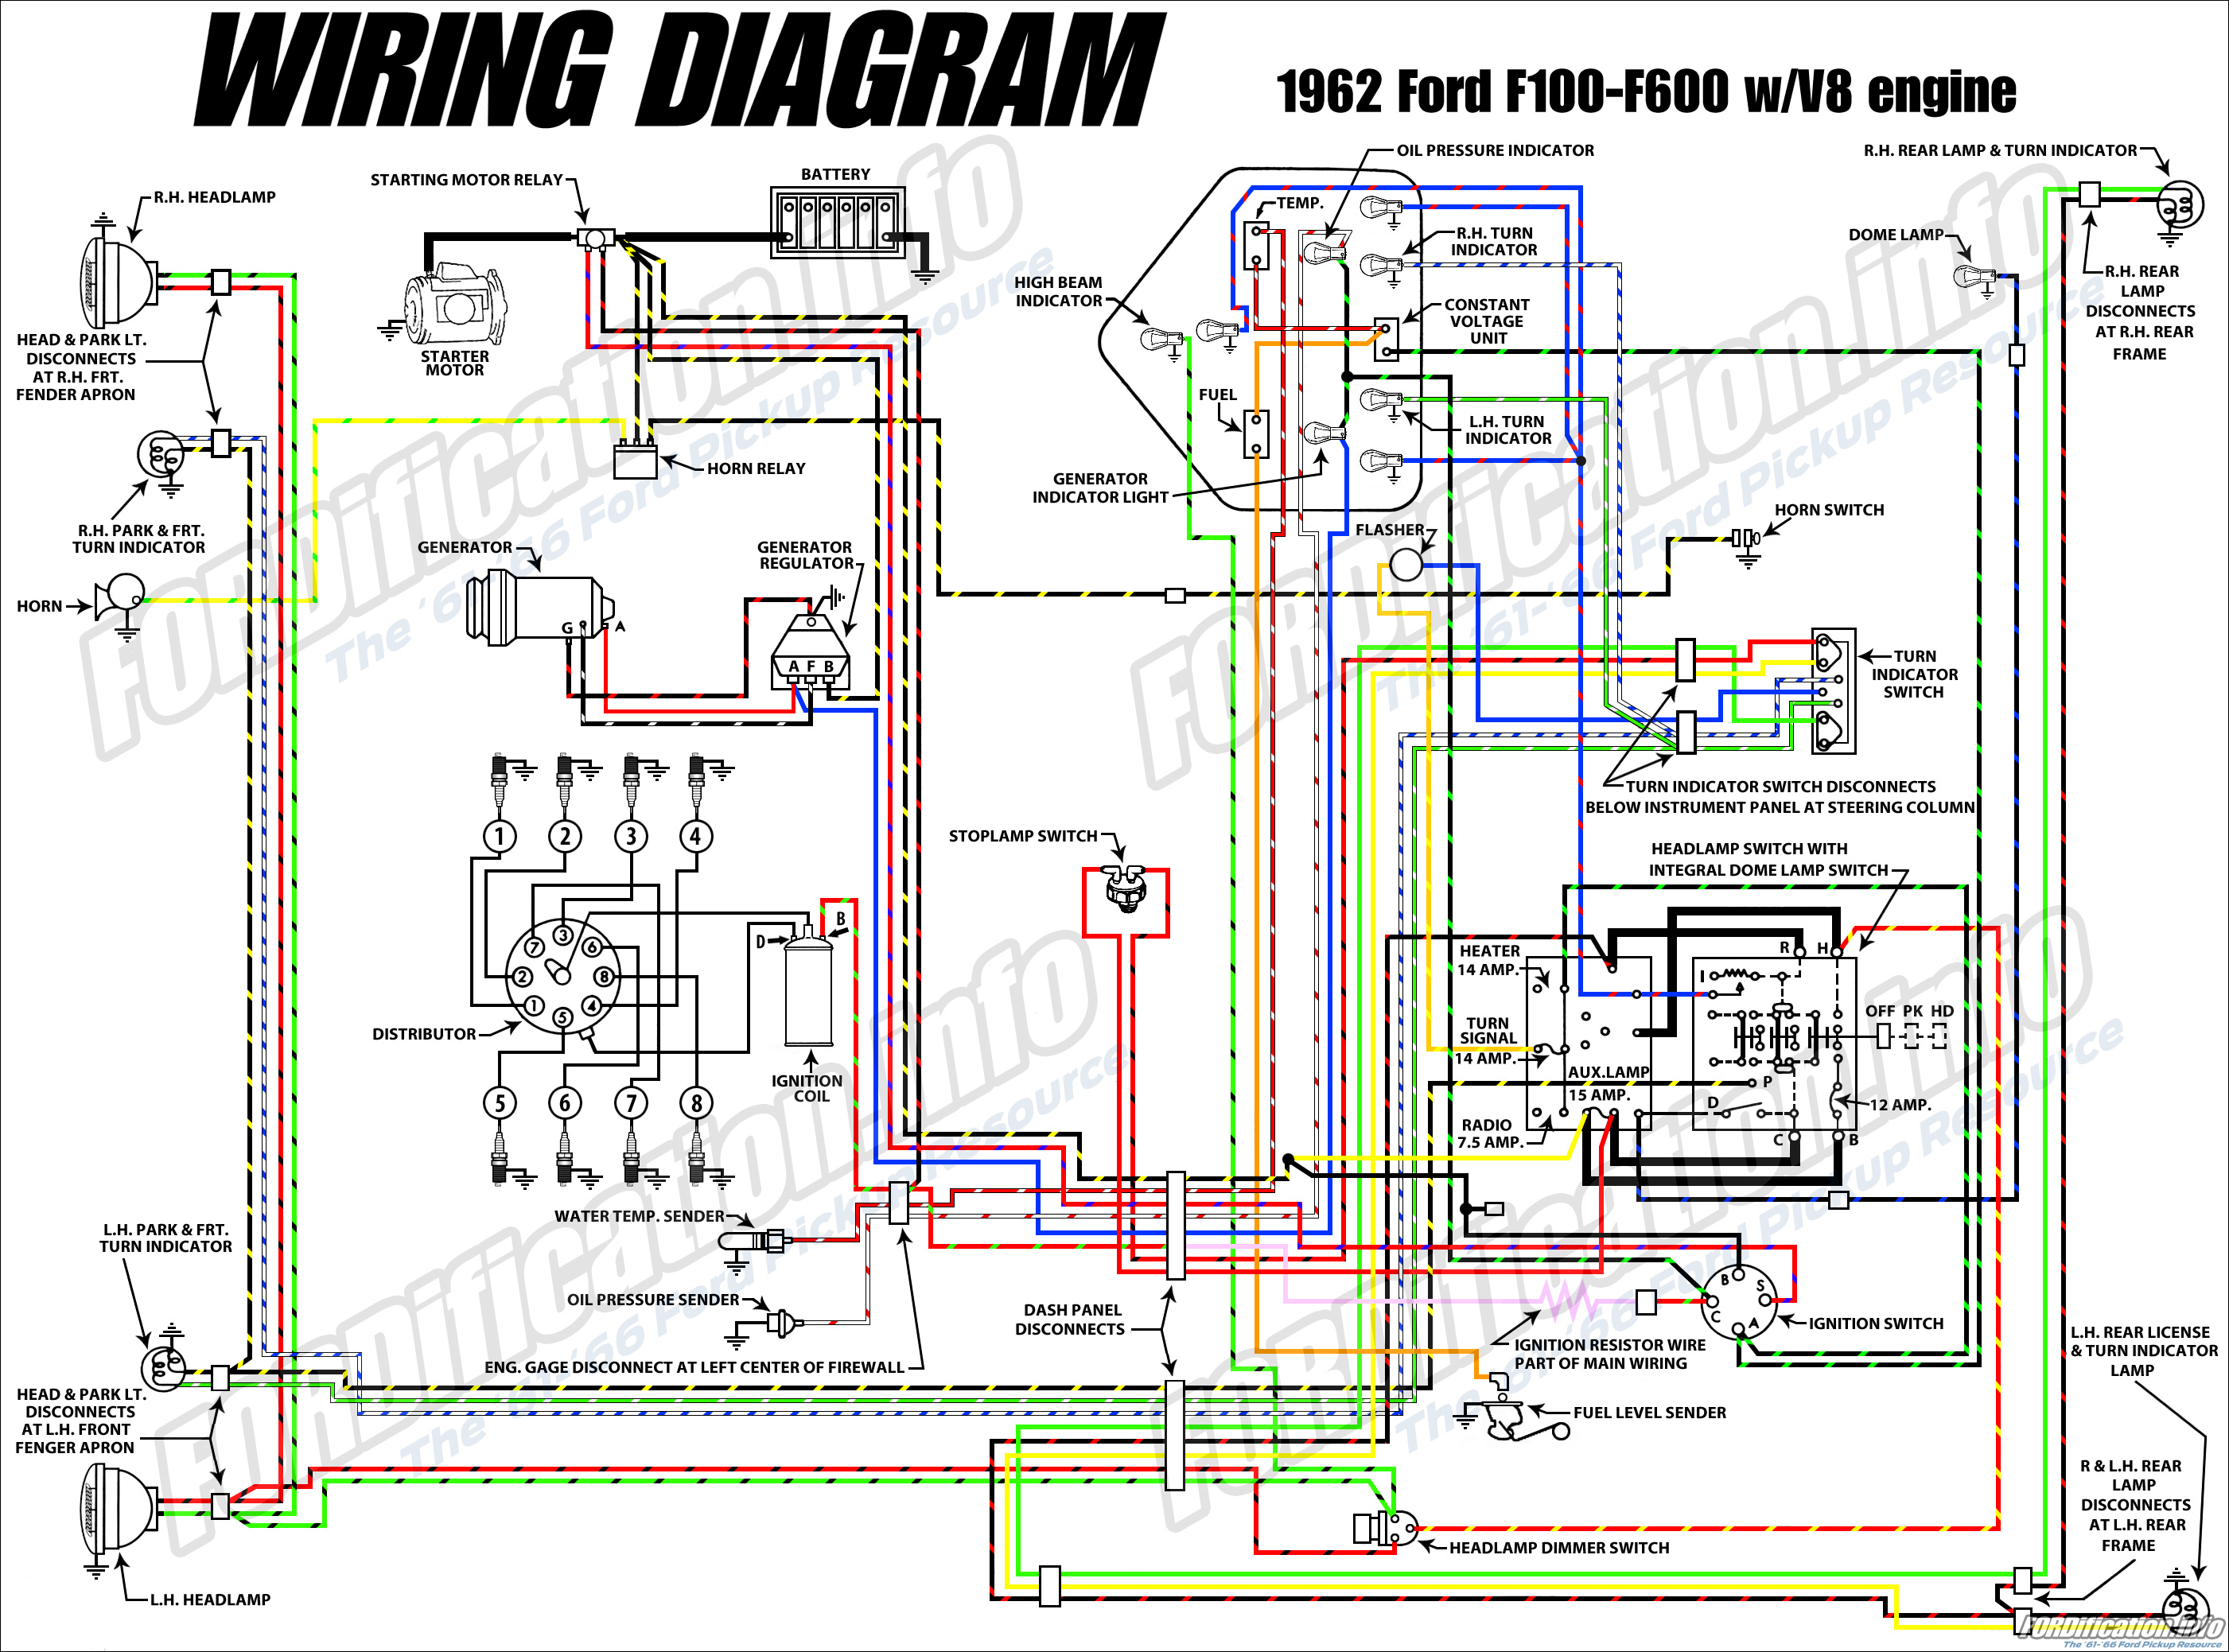 Ford Truck Wiring Diagrams Schematic Diagram 2005 F 150 Crankshaft Sensor F600